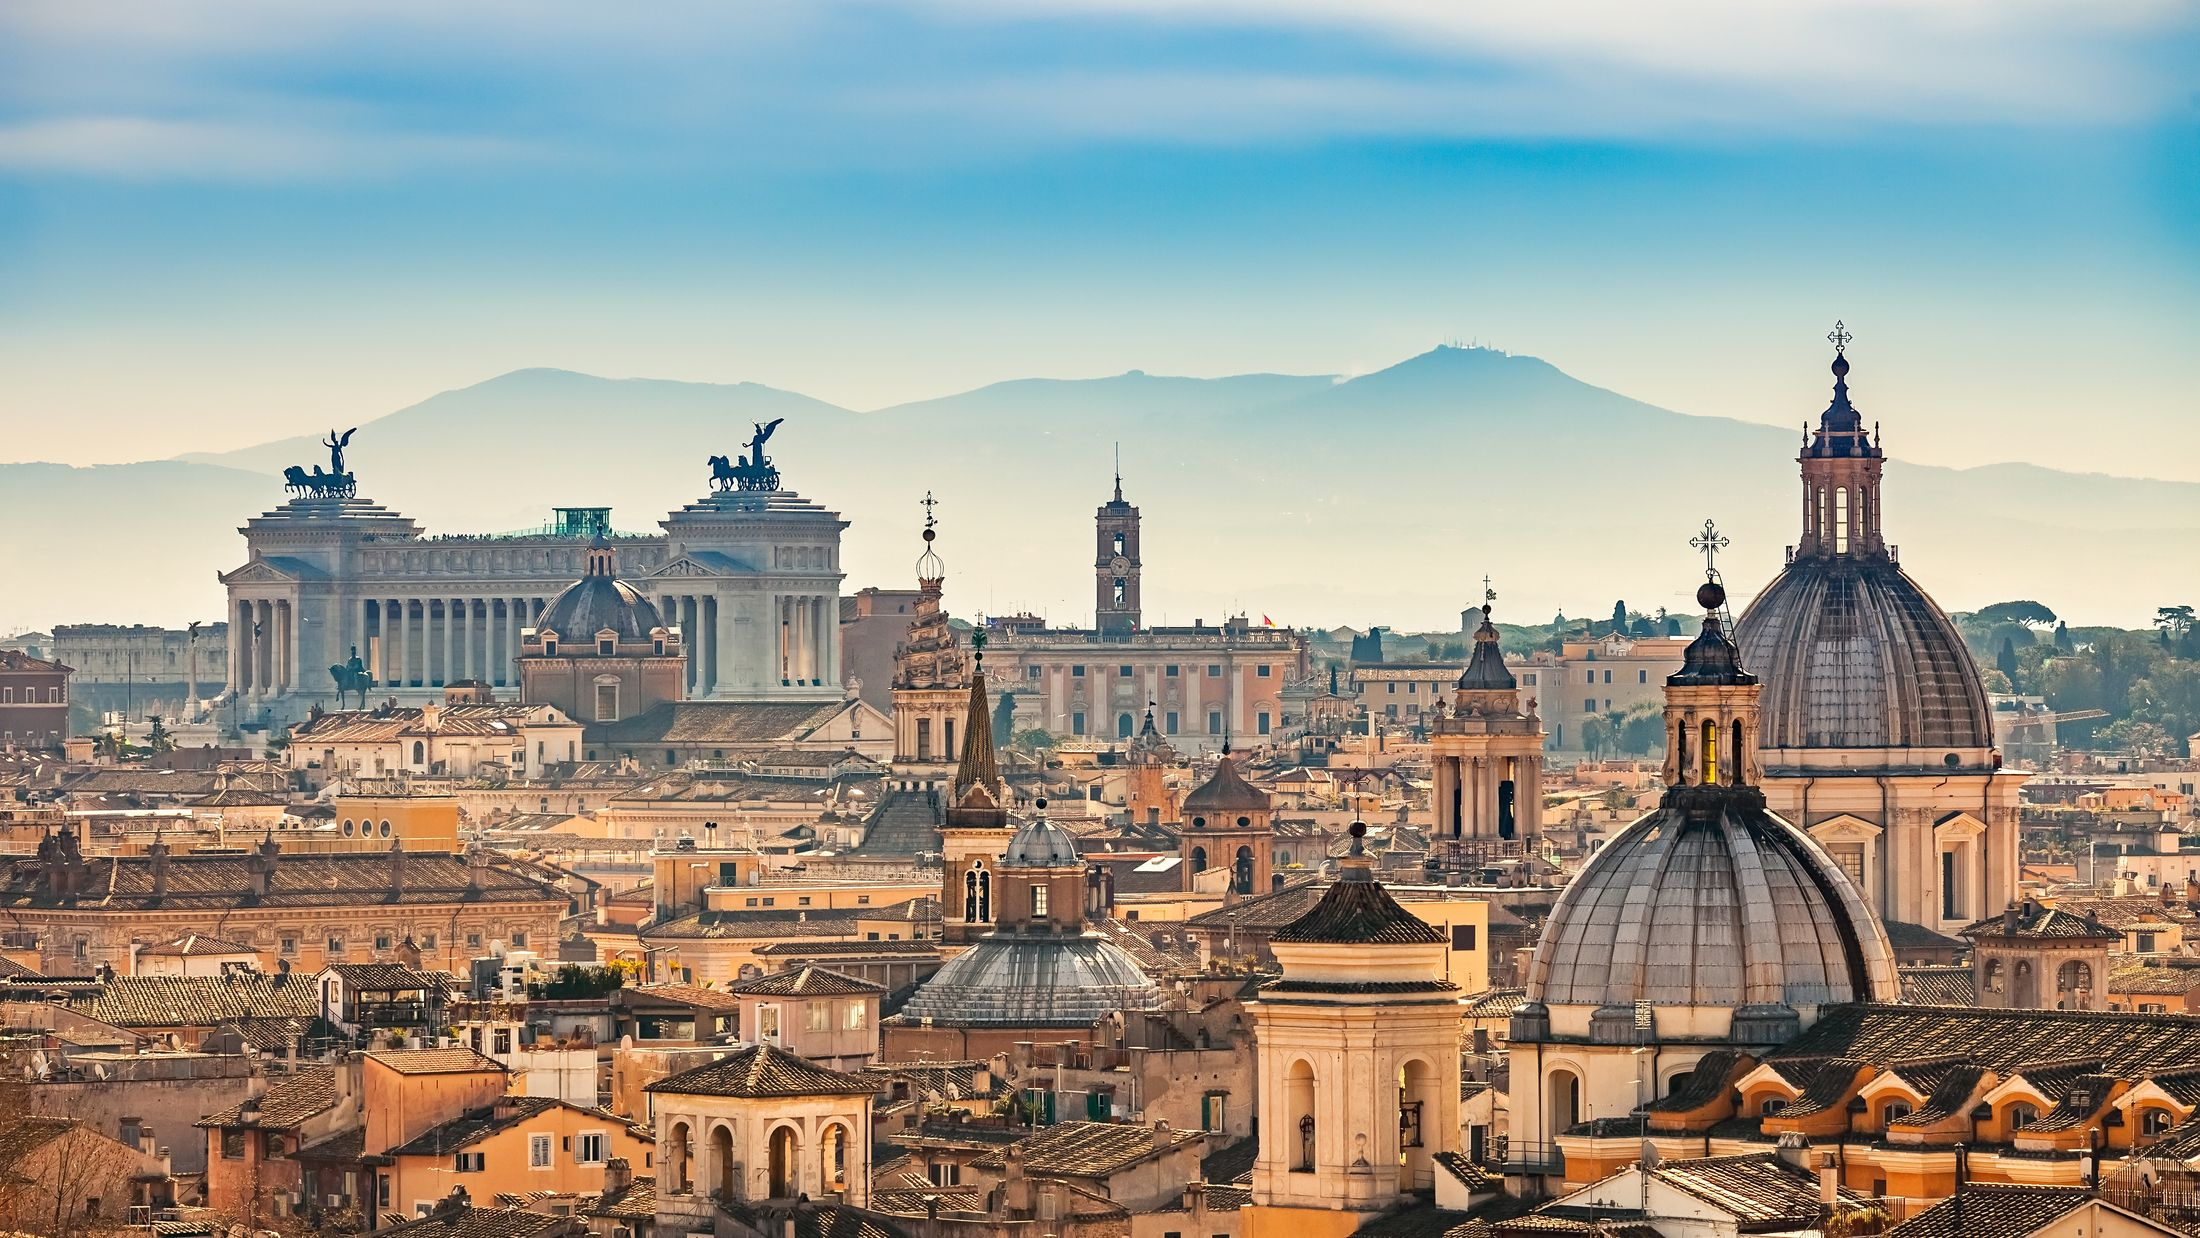 000940-View-from-Castel-Sant-Angelo-Rome-shutterstock-390573763-Hybris